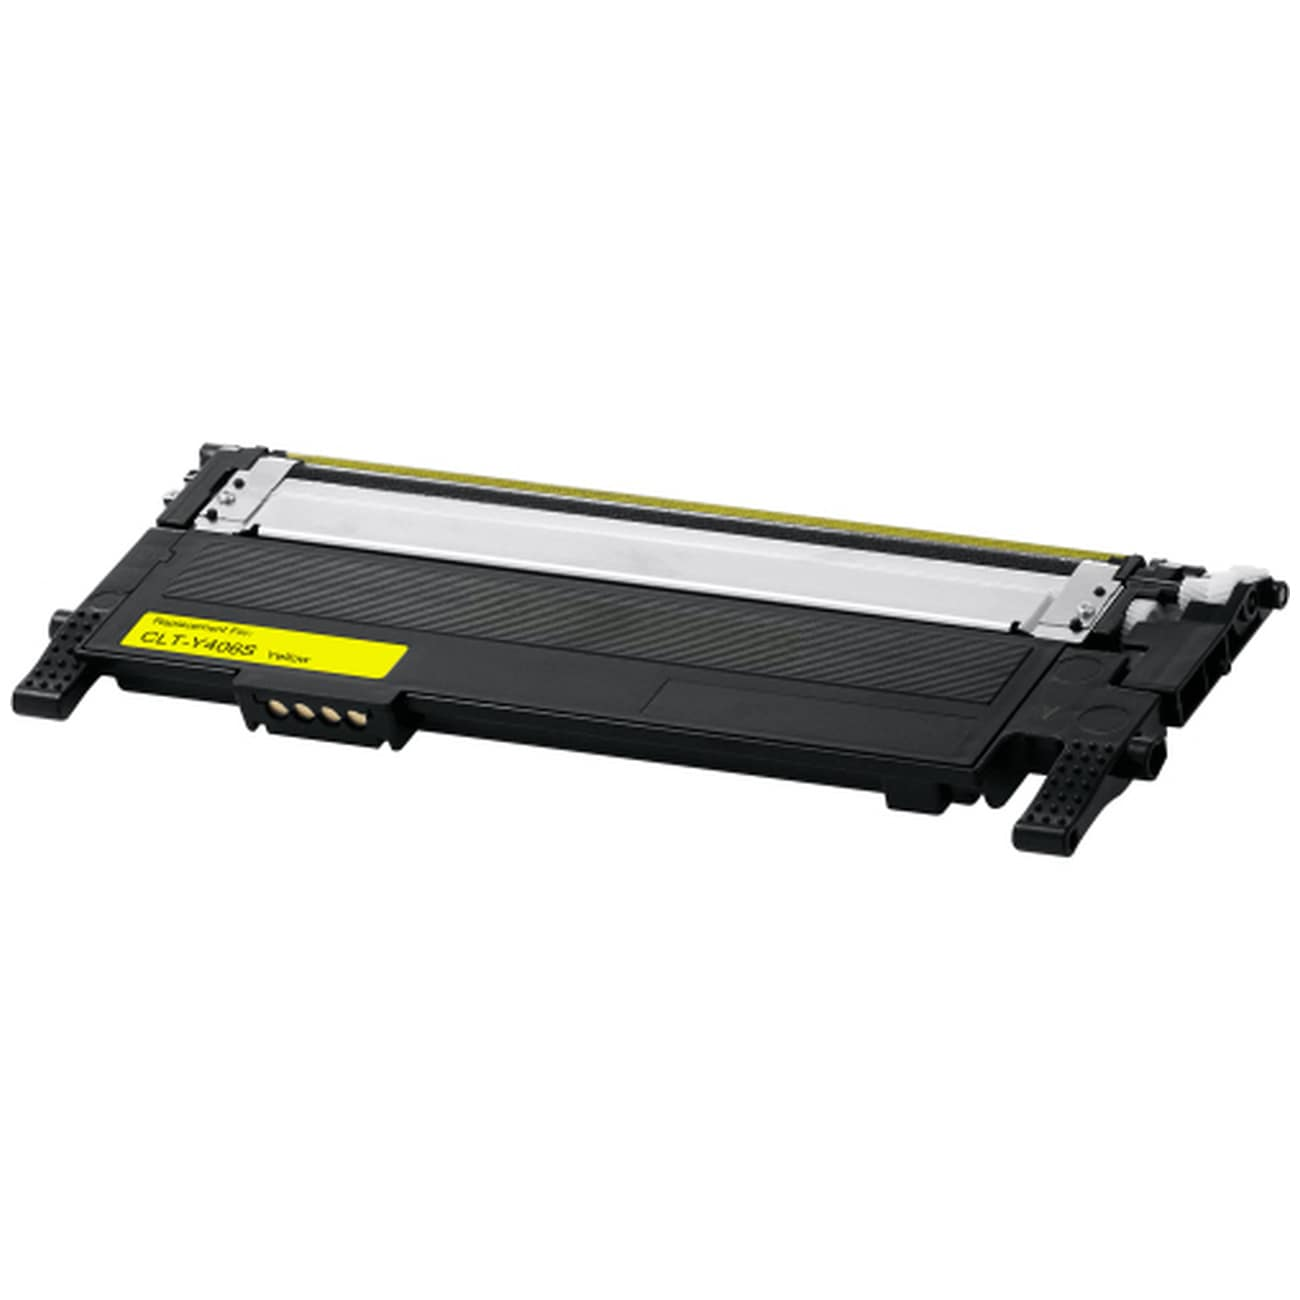 CLT-Y406S Toner Cartridge - Samsung Remanufactured (Yellow)